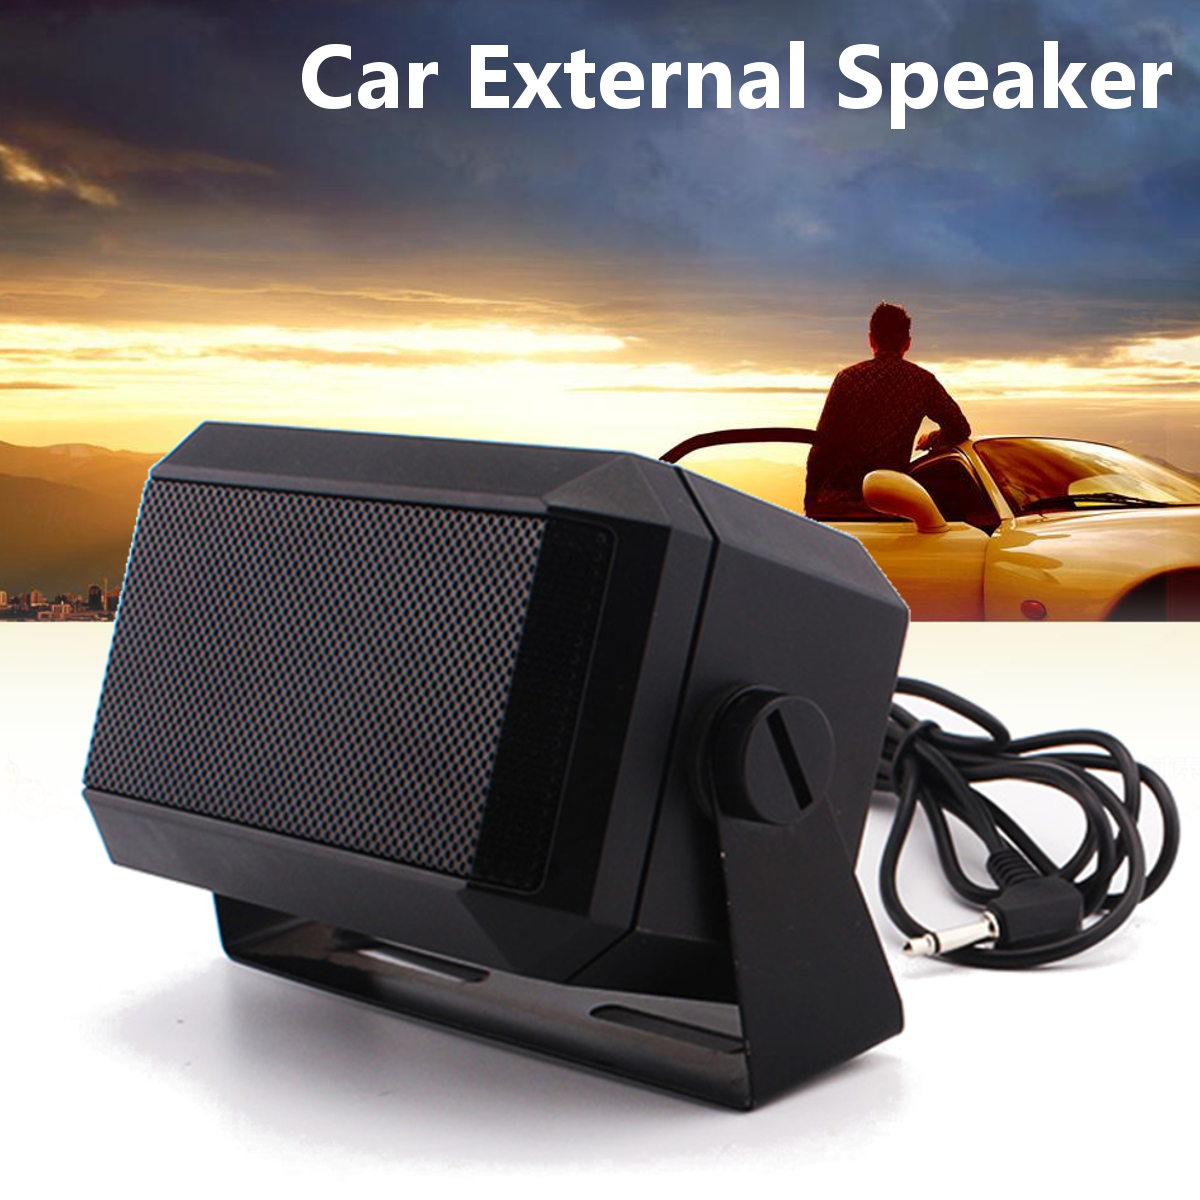 цена Portable Auto External Speaker High-Power Loudspeaker Amplifier Car Radio Intercom For Walkie Talkie Car Mobile Radio Speaker